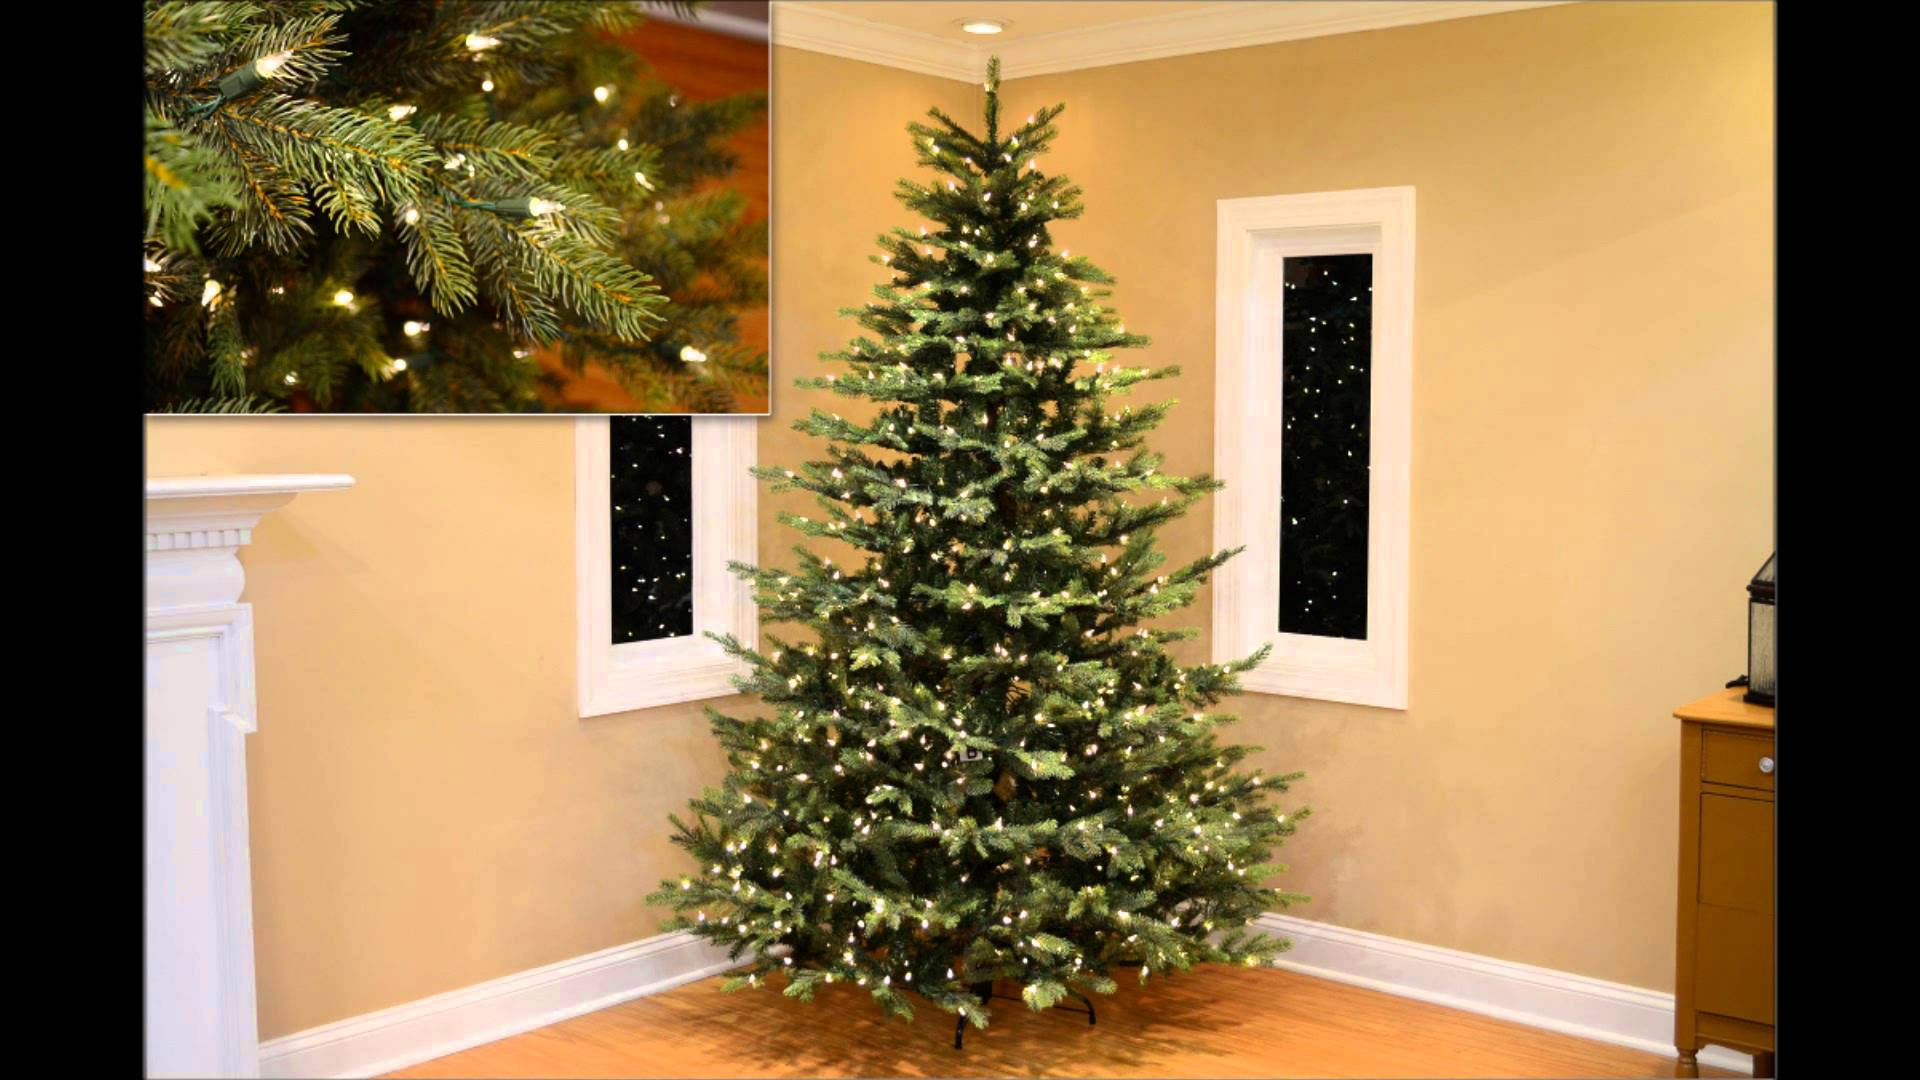 40 Artificial Christmas Tree Ideas - Christmas Celebration - All ...